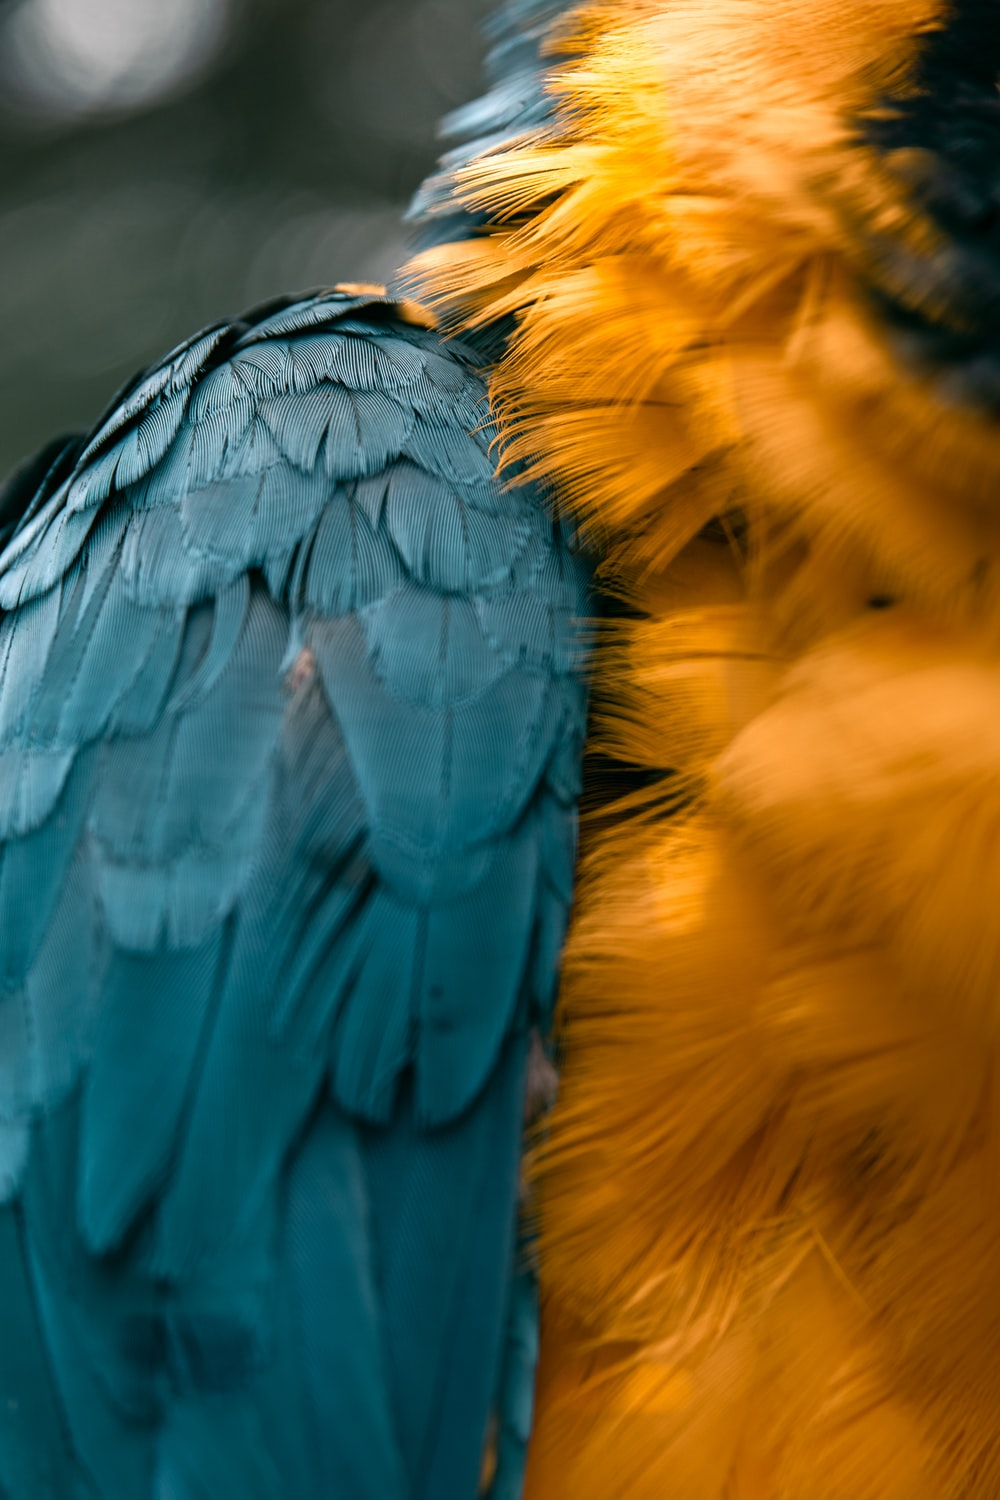 yellow and blue eagle